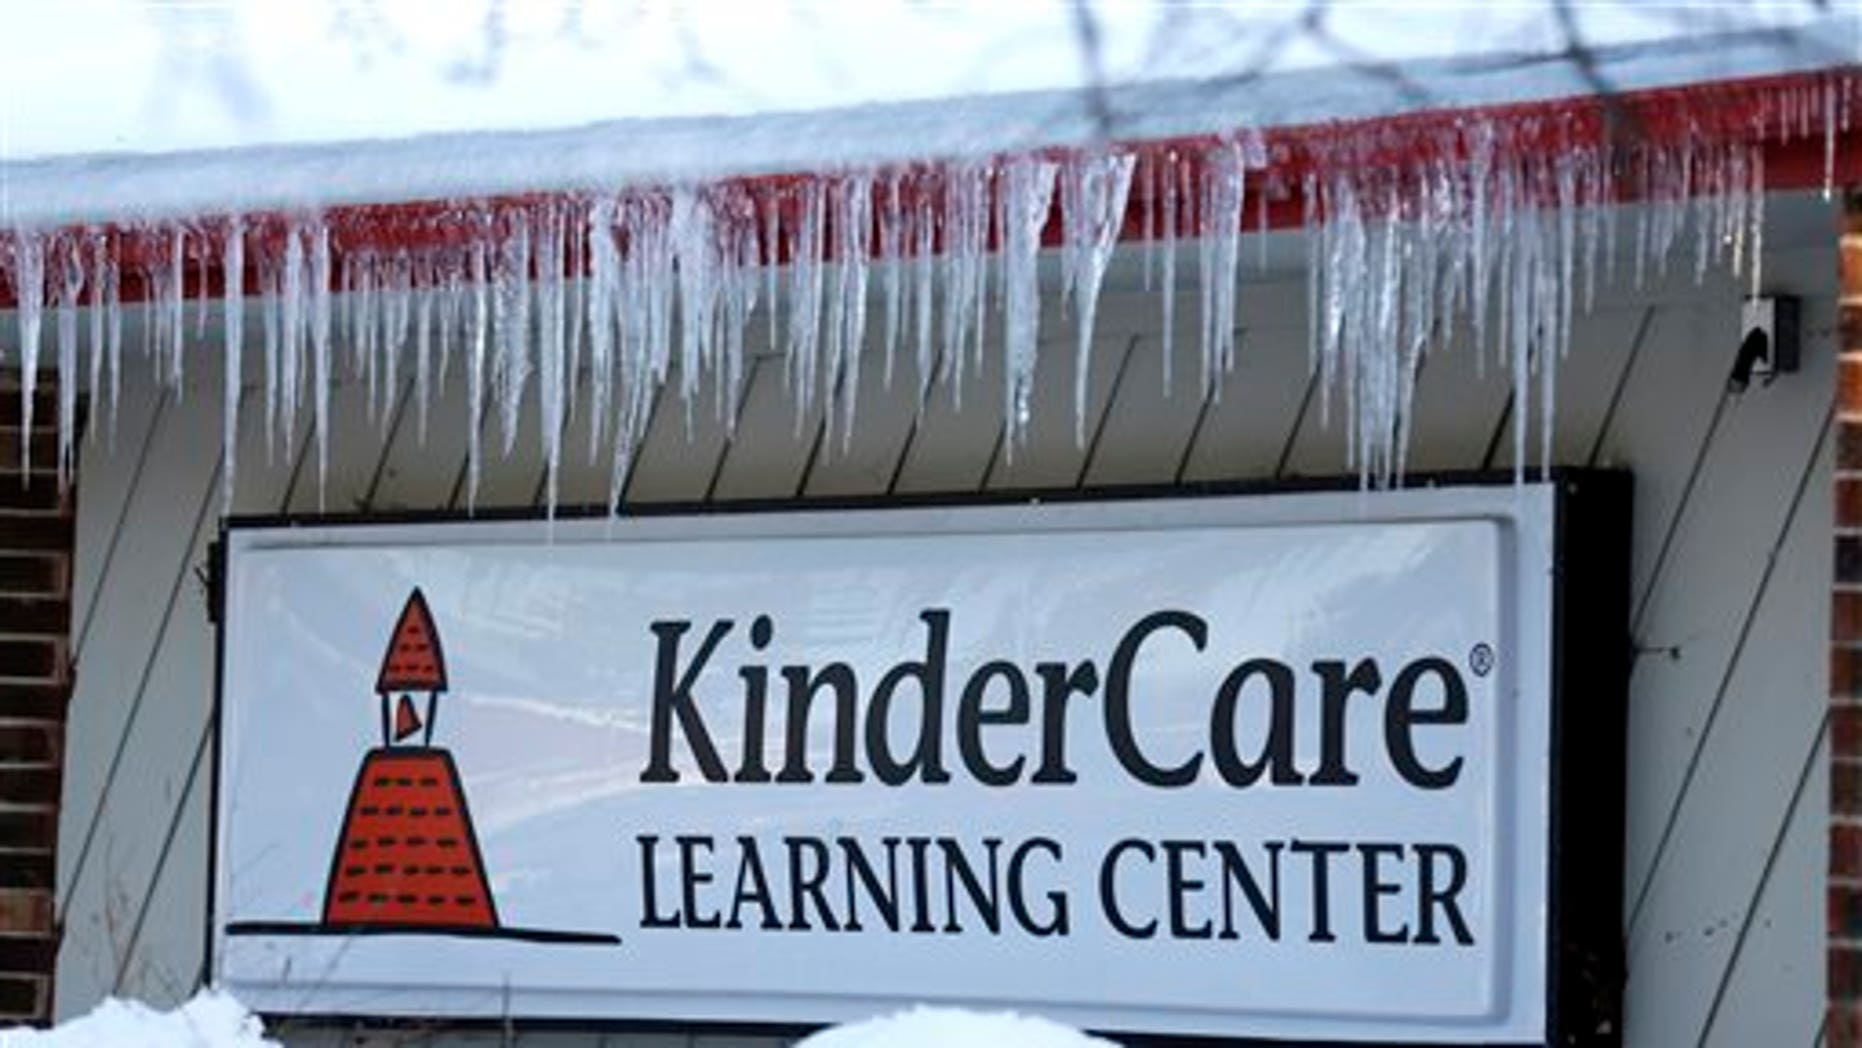 Icicles line the exterior of KinderCare Learning Center on East Palatine Road, Thursday, Feb. 5, 2015, in Palatine, Ill. (AP Photo/Nam Y. Huh)